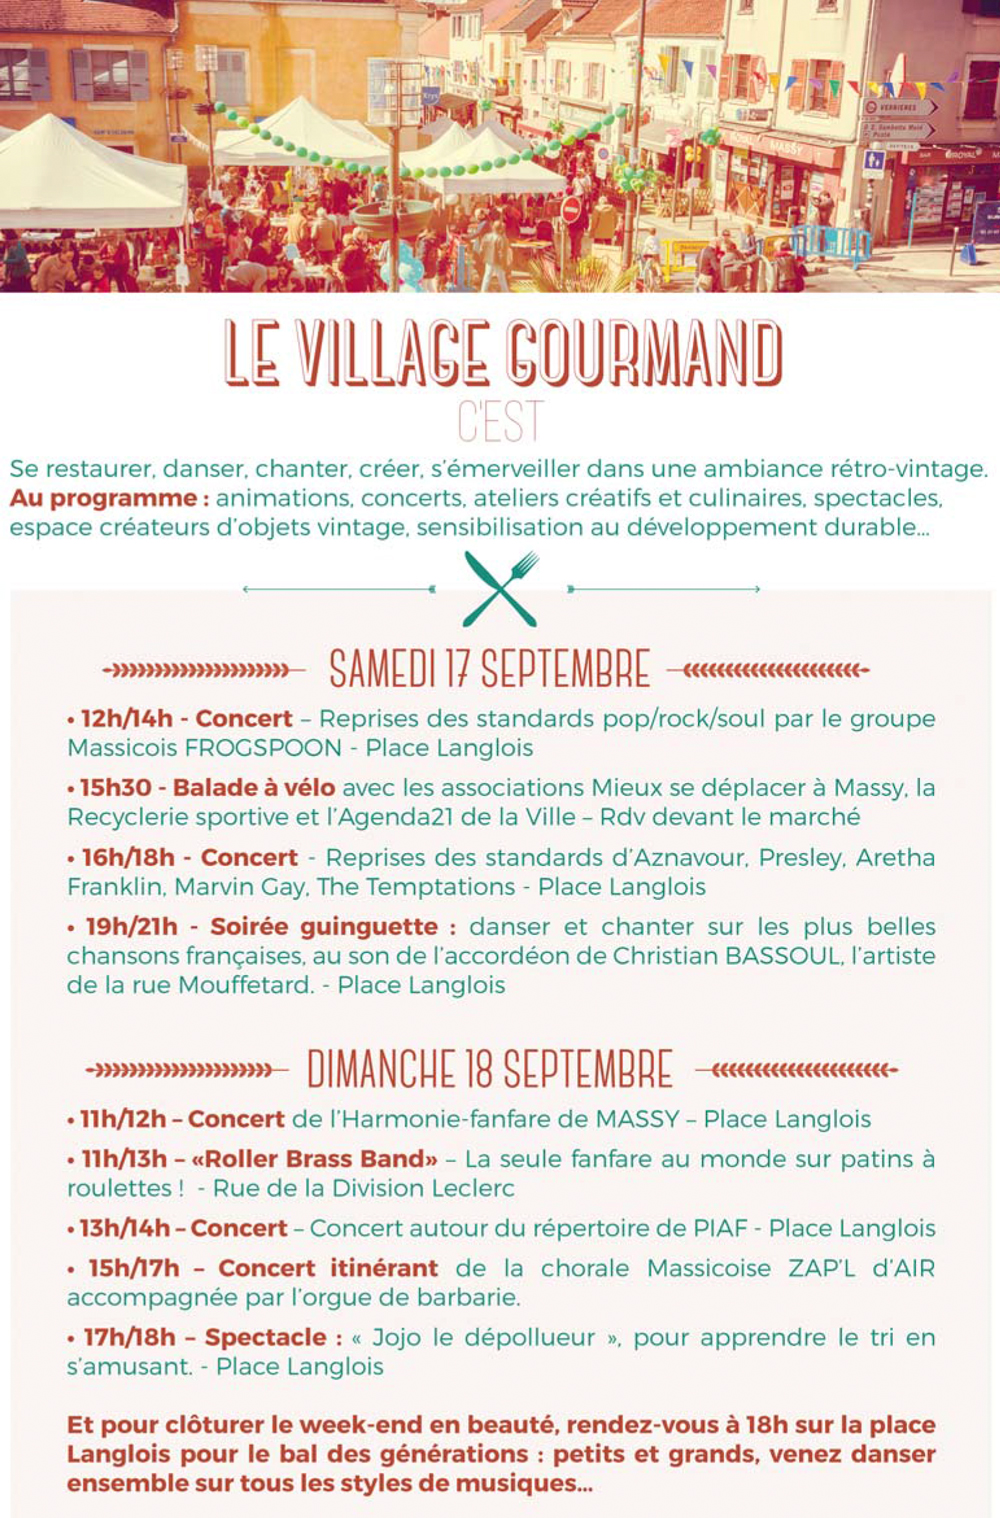 village_gourmand_2016-2